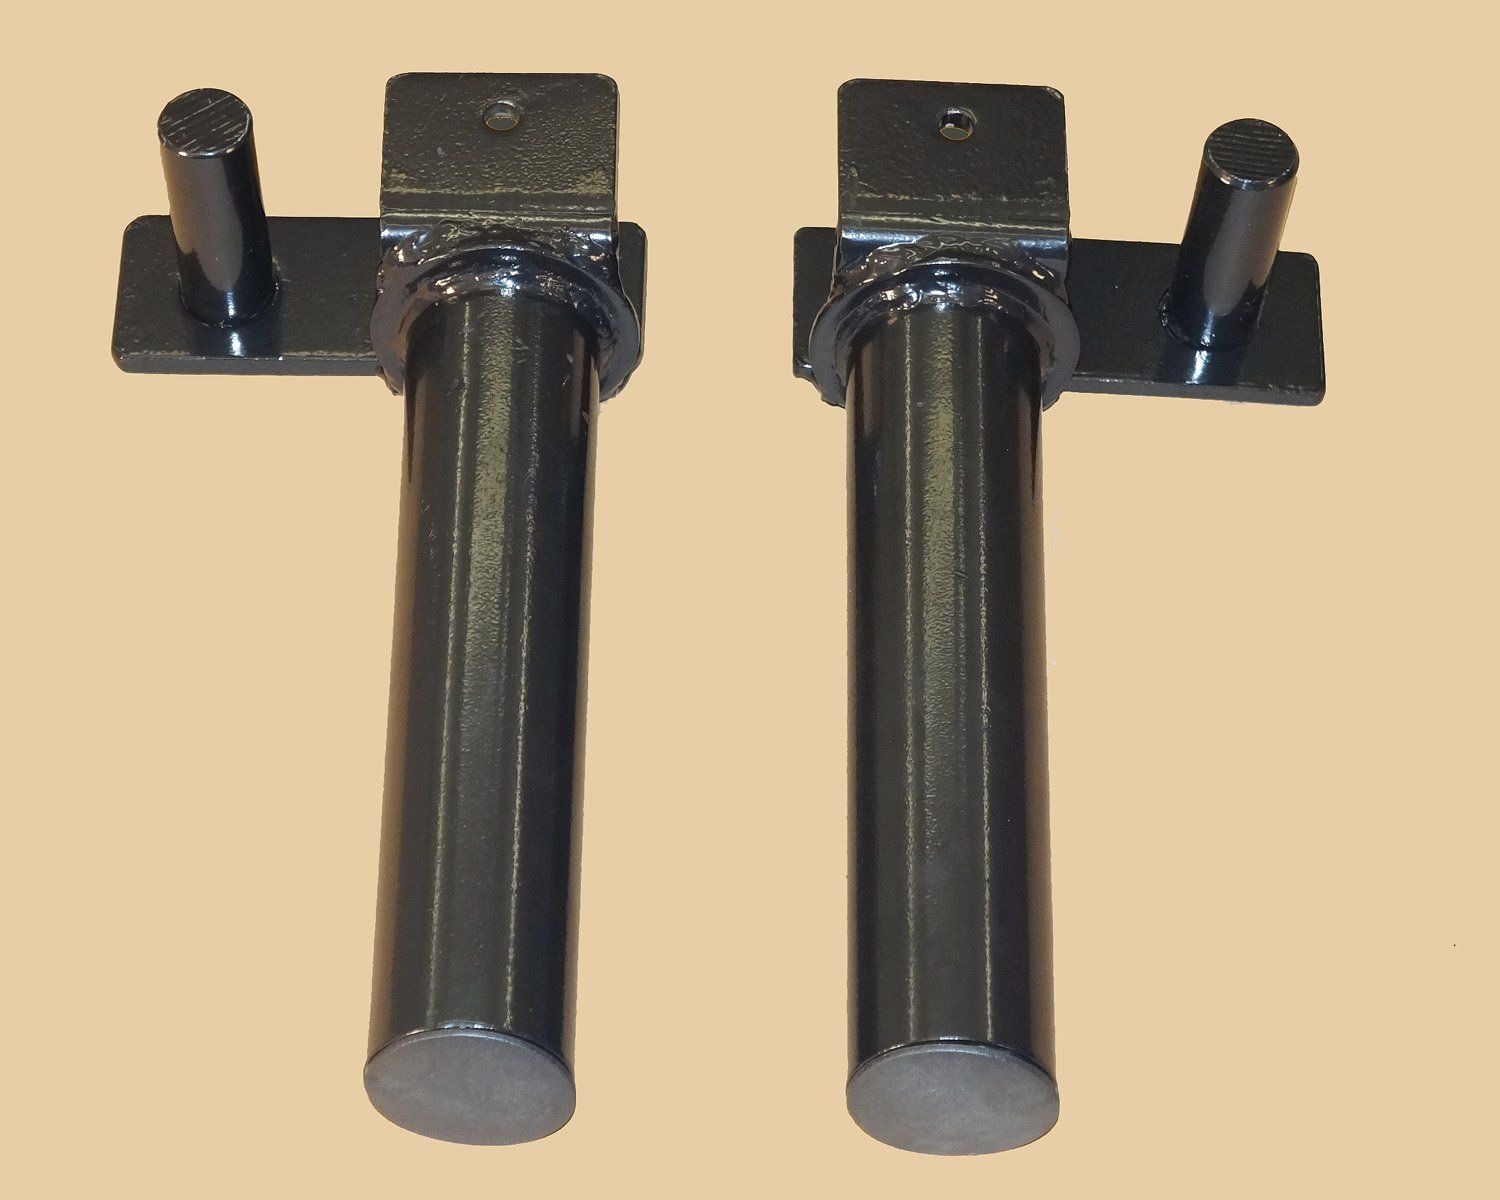 Adjustable Plate Holder Attach For 2 Quot Sq Tube Fits On